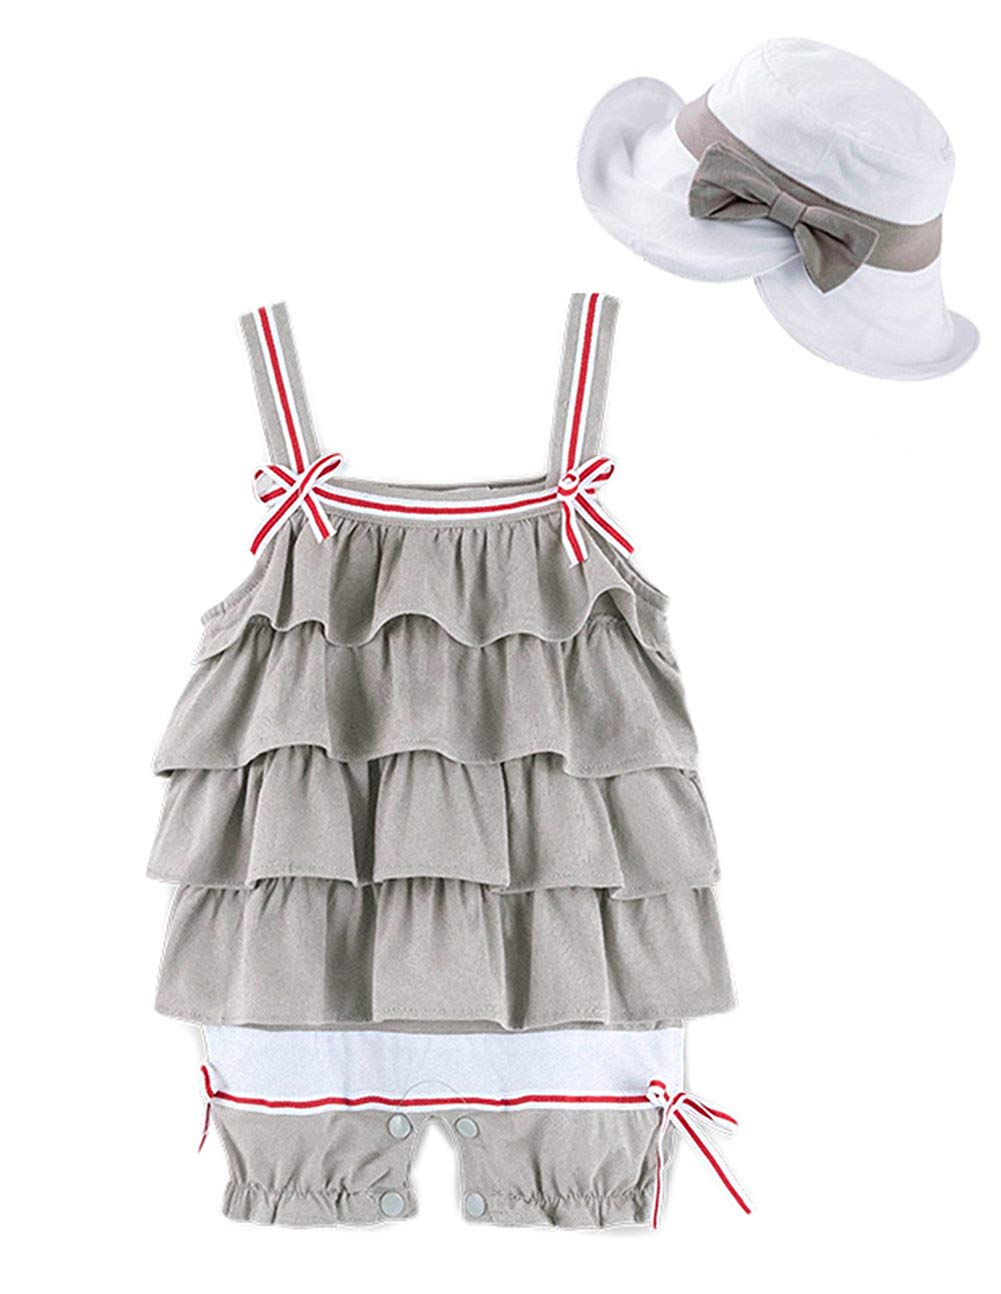 5d8691f72ea Get Quotations · stylesilove Baby Girl Ruffle Layered Sleeveless Cotton  Romper and Hat 2 pcs Set